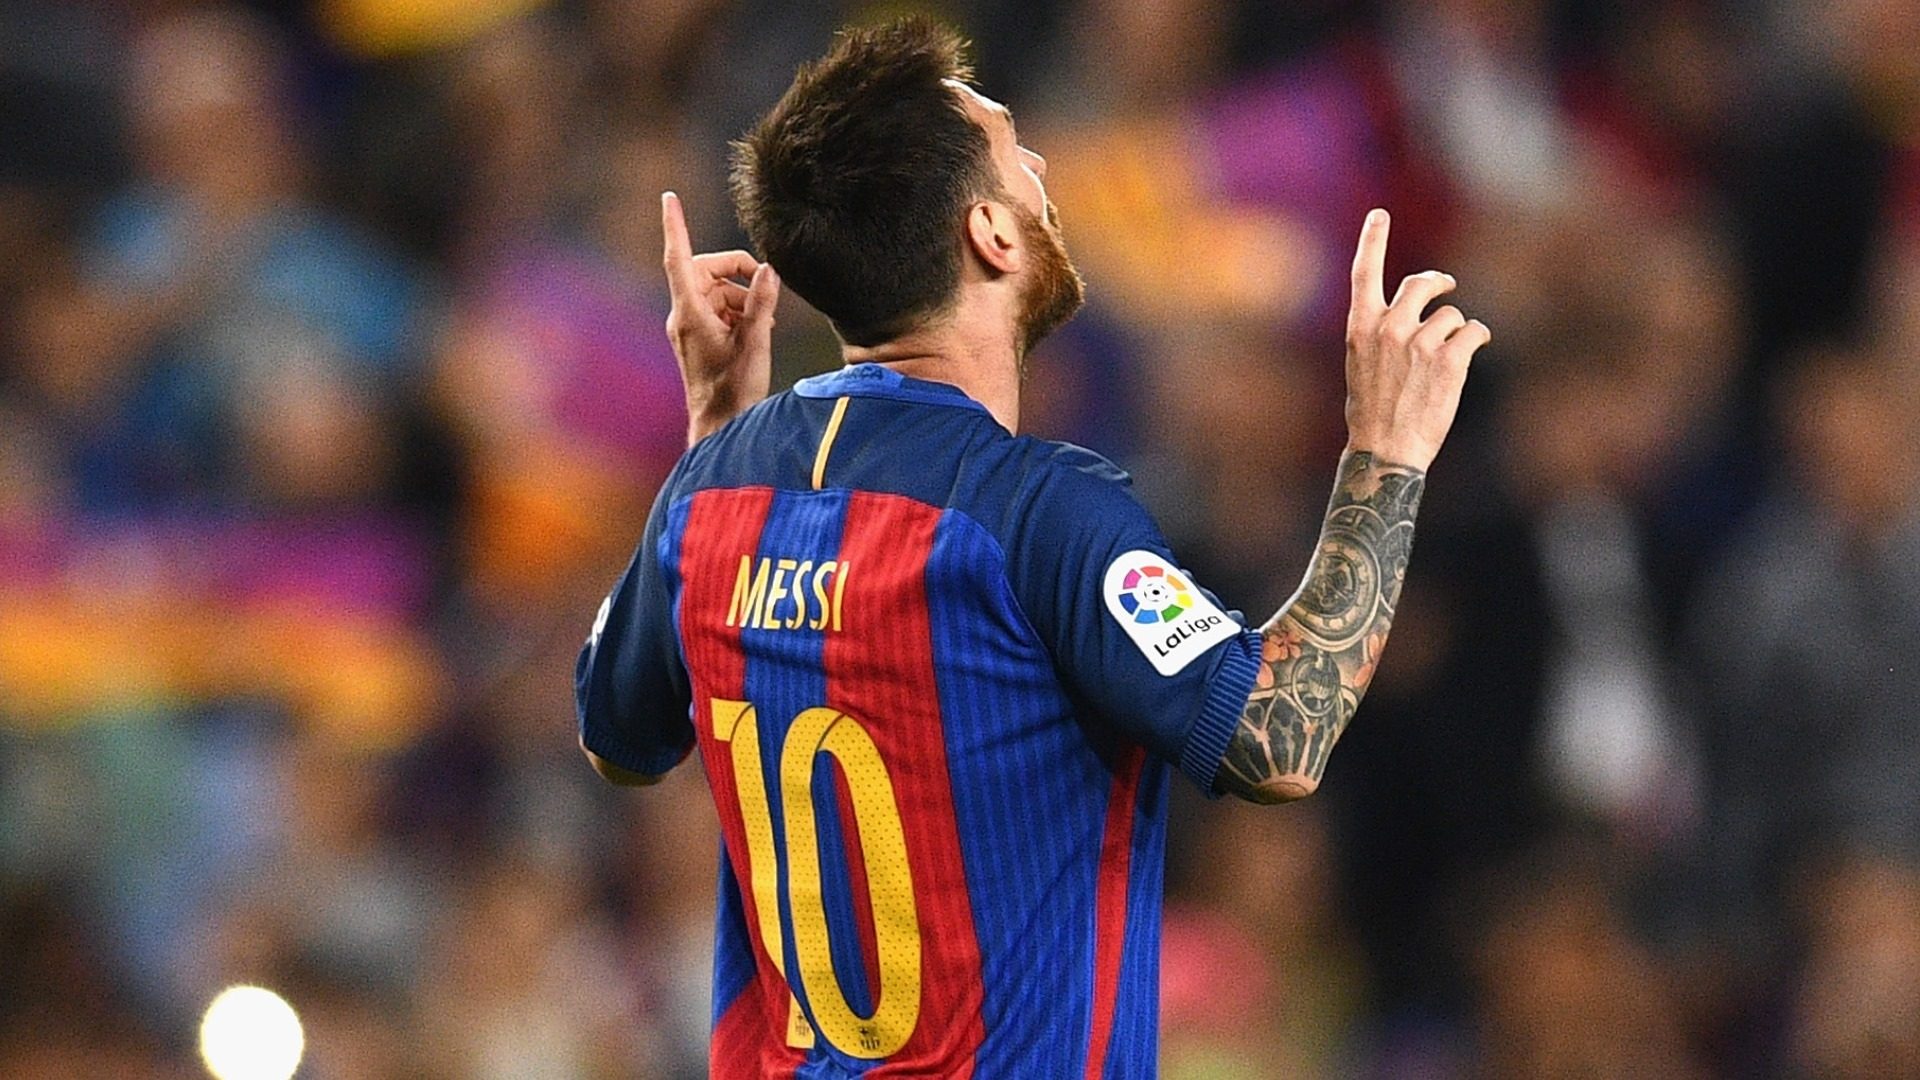 Messi images high quality 4